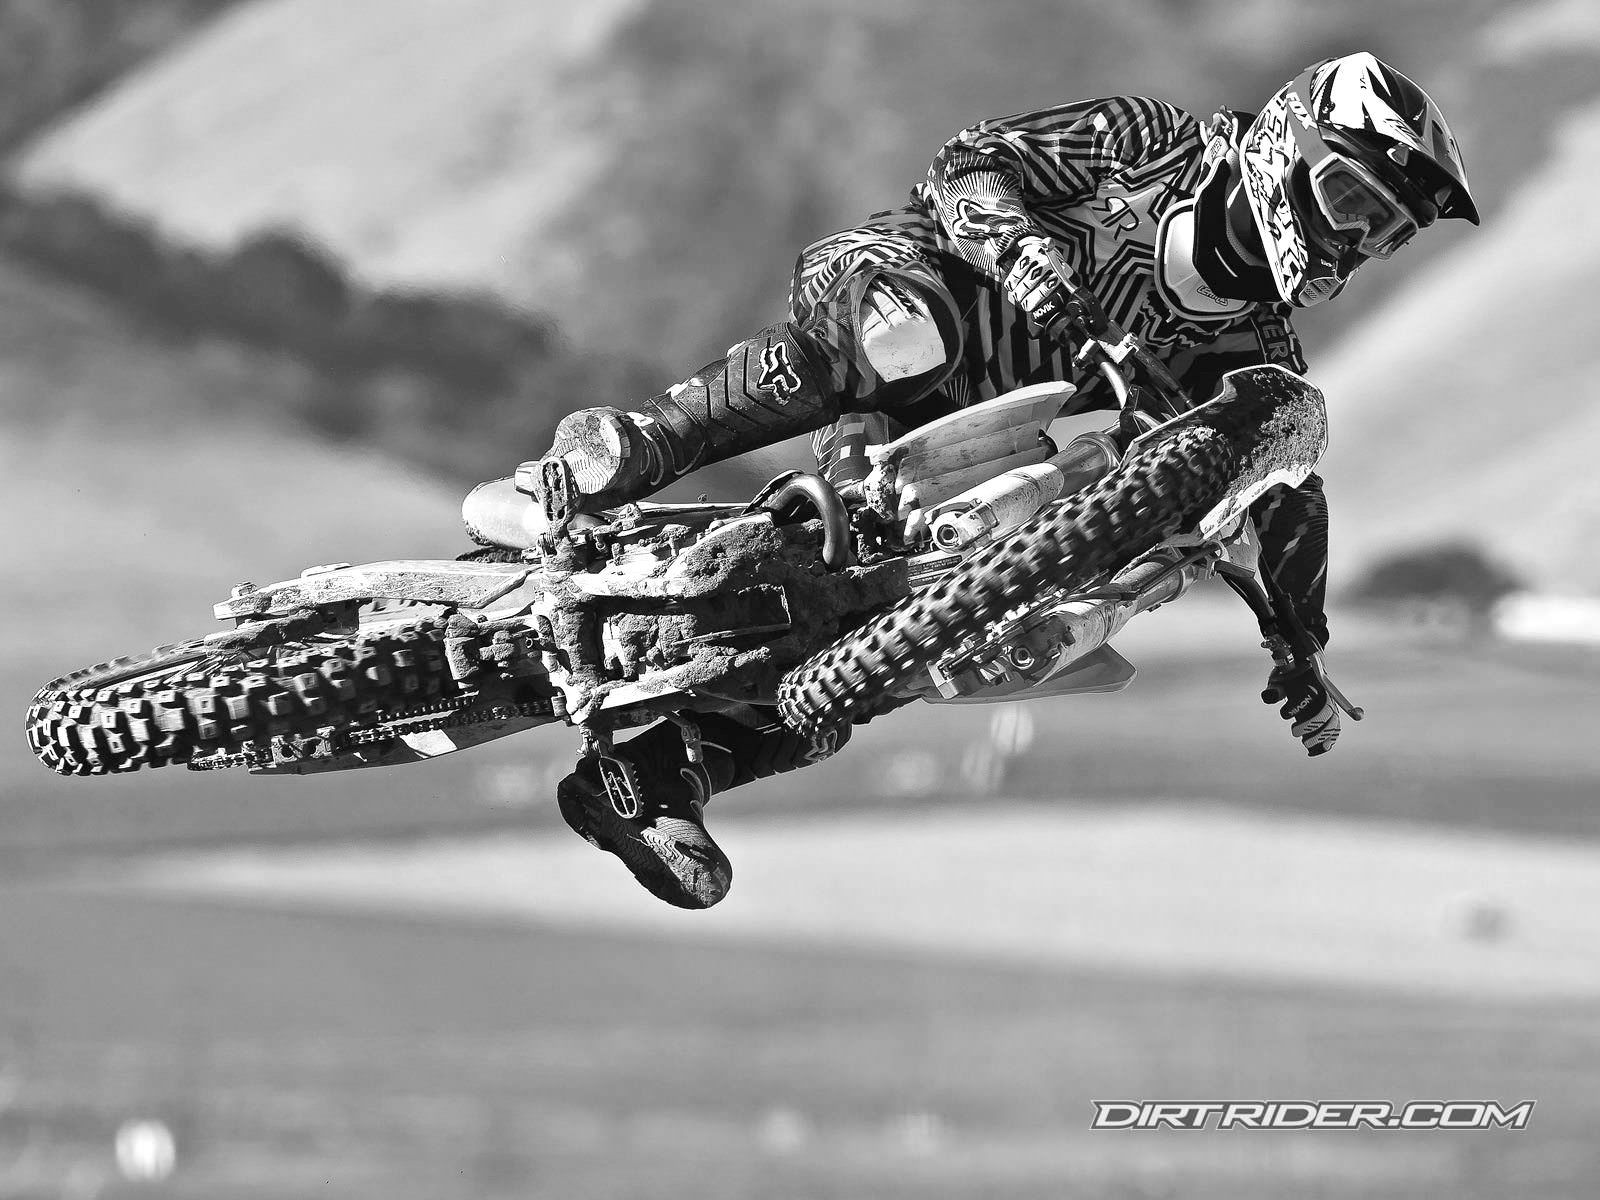 Dirt Bike Black And White Wallpaper Black And White Wallpaper White Wallpaper Black And White